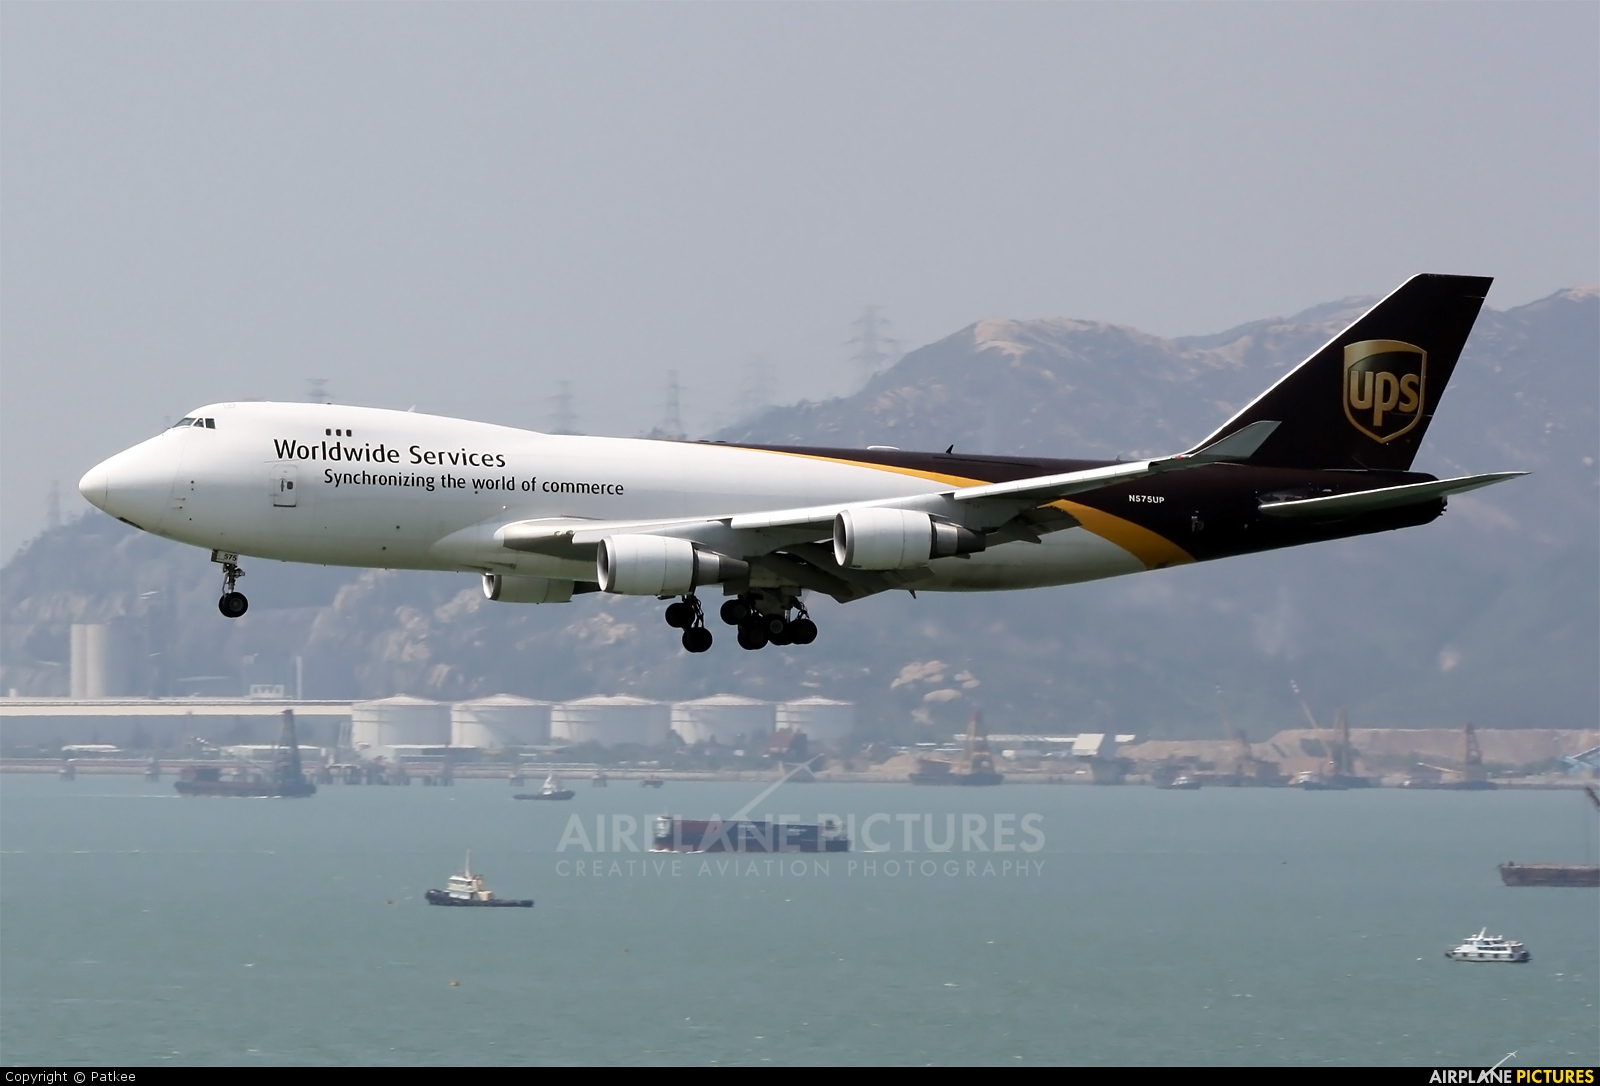 UPS - United Parcel Service N575UP aircraft at HKG - Chek Lap Kok Intl